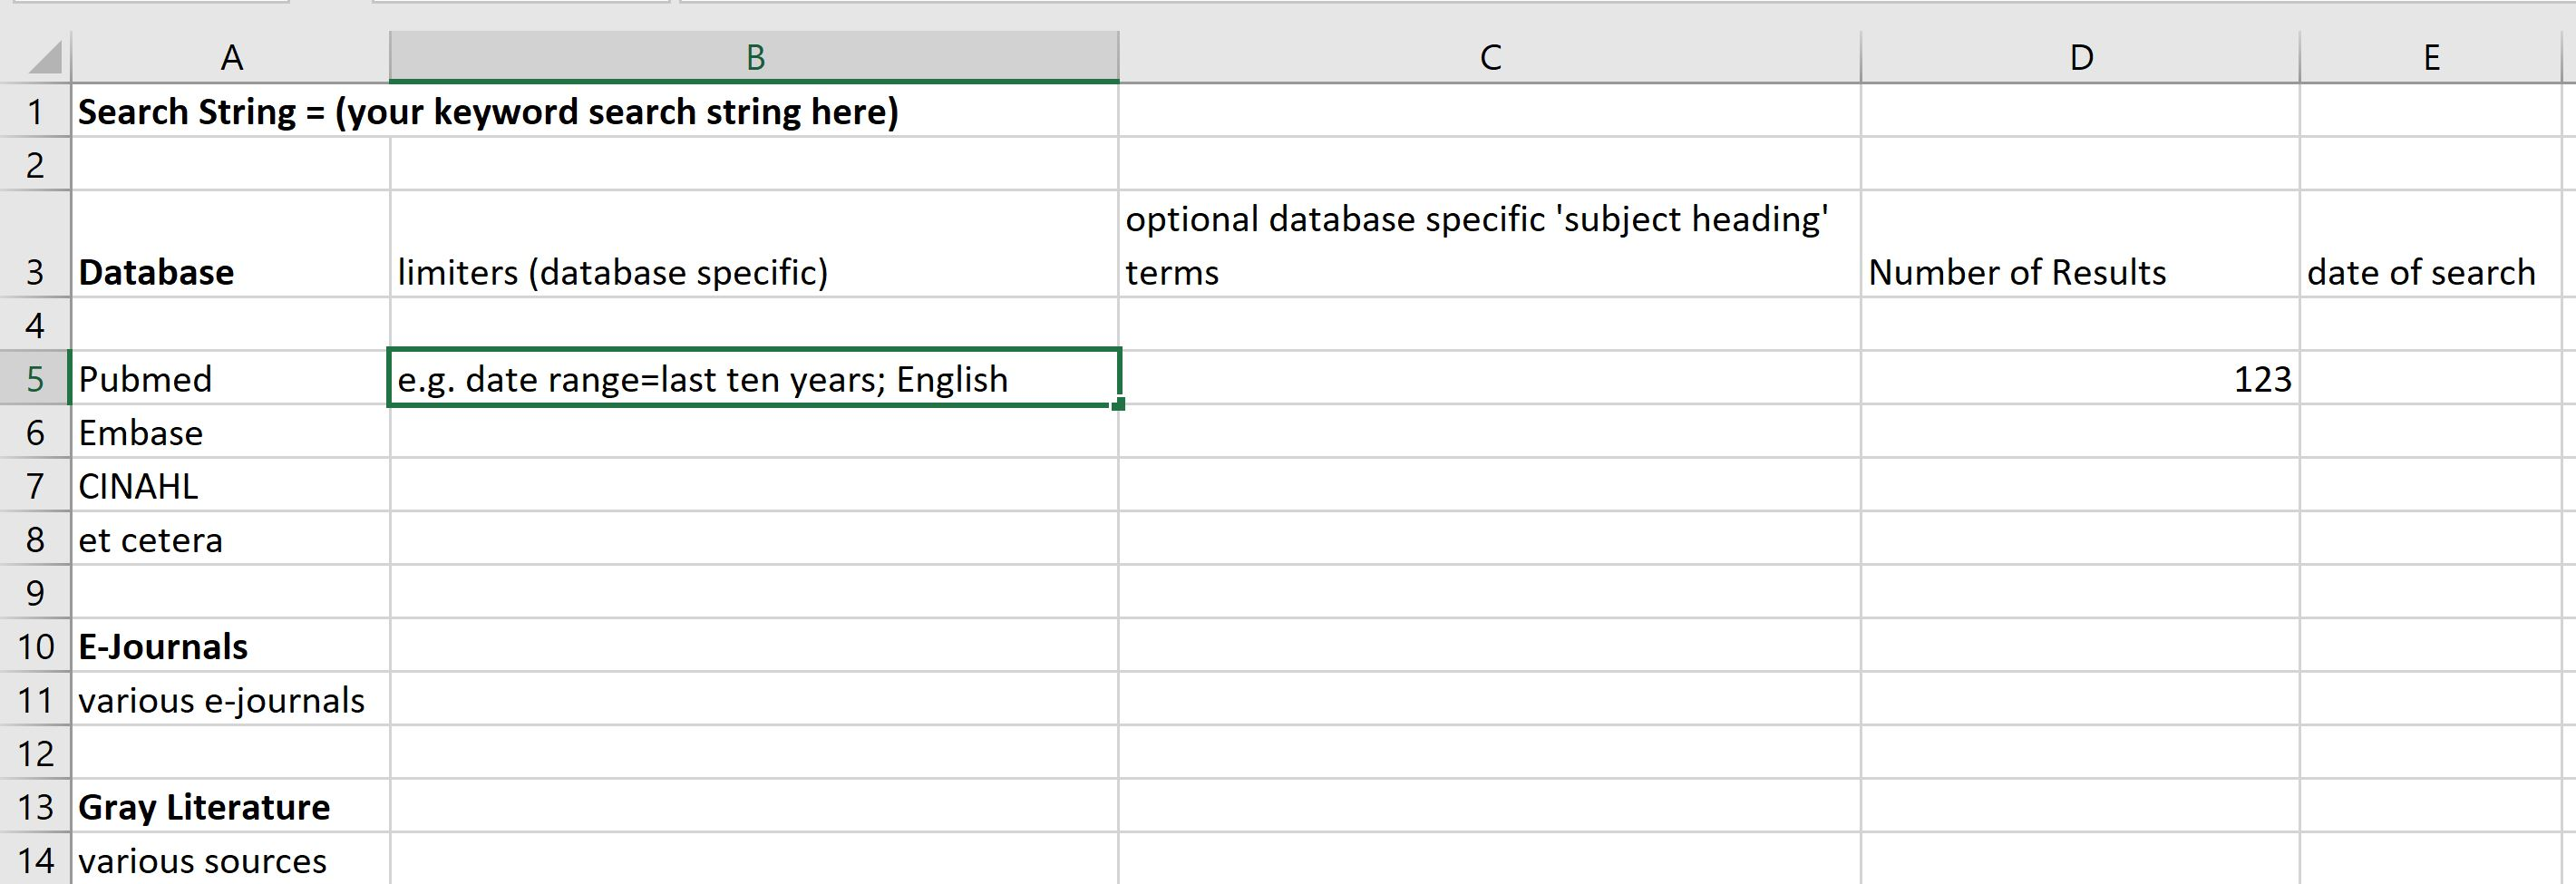 example of a recorded search using microsoft excel